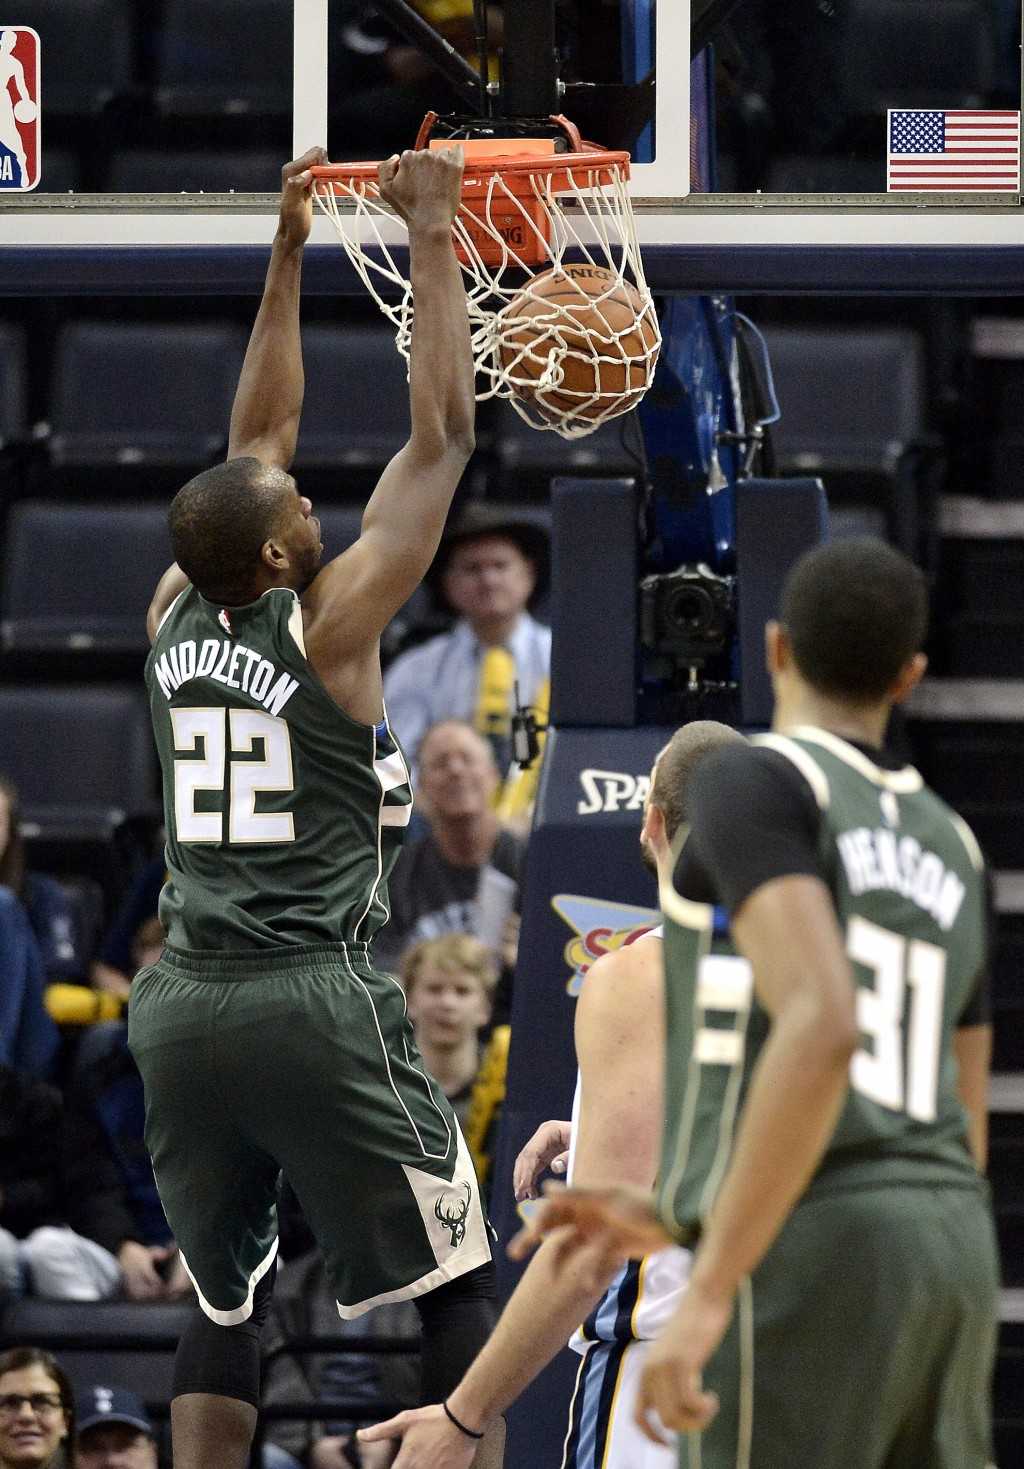 Milwaukee Bucks forward Khris Middleton (22) dunks in the second half of an NBA basketball game against the Memphis Grizzlies, Monday, March 12, 2018,